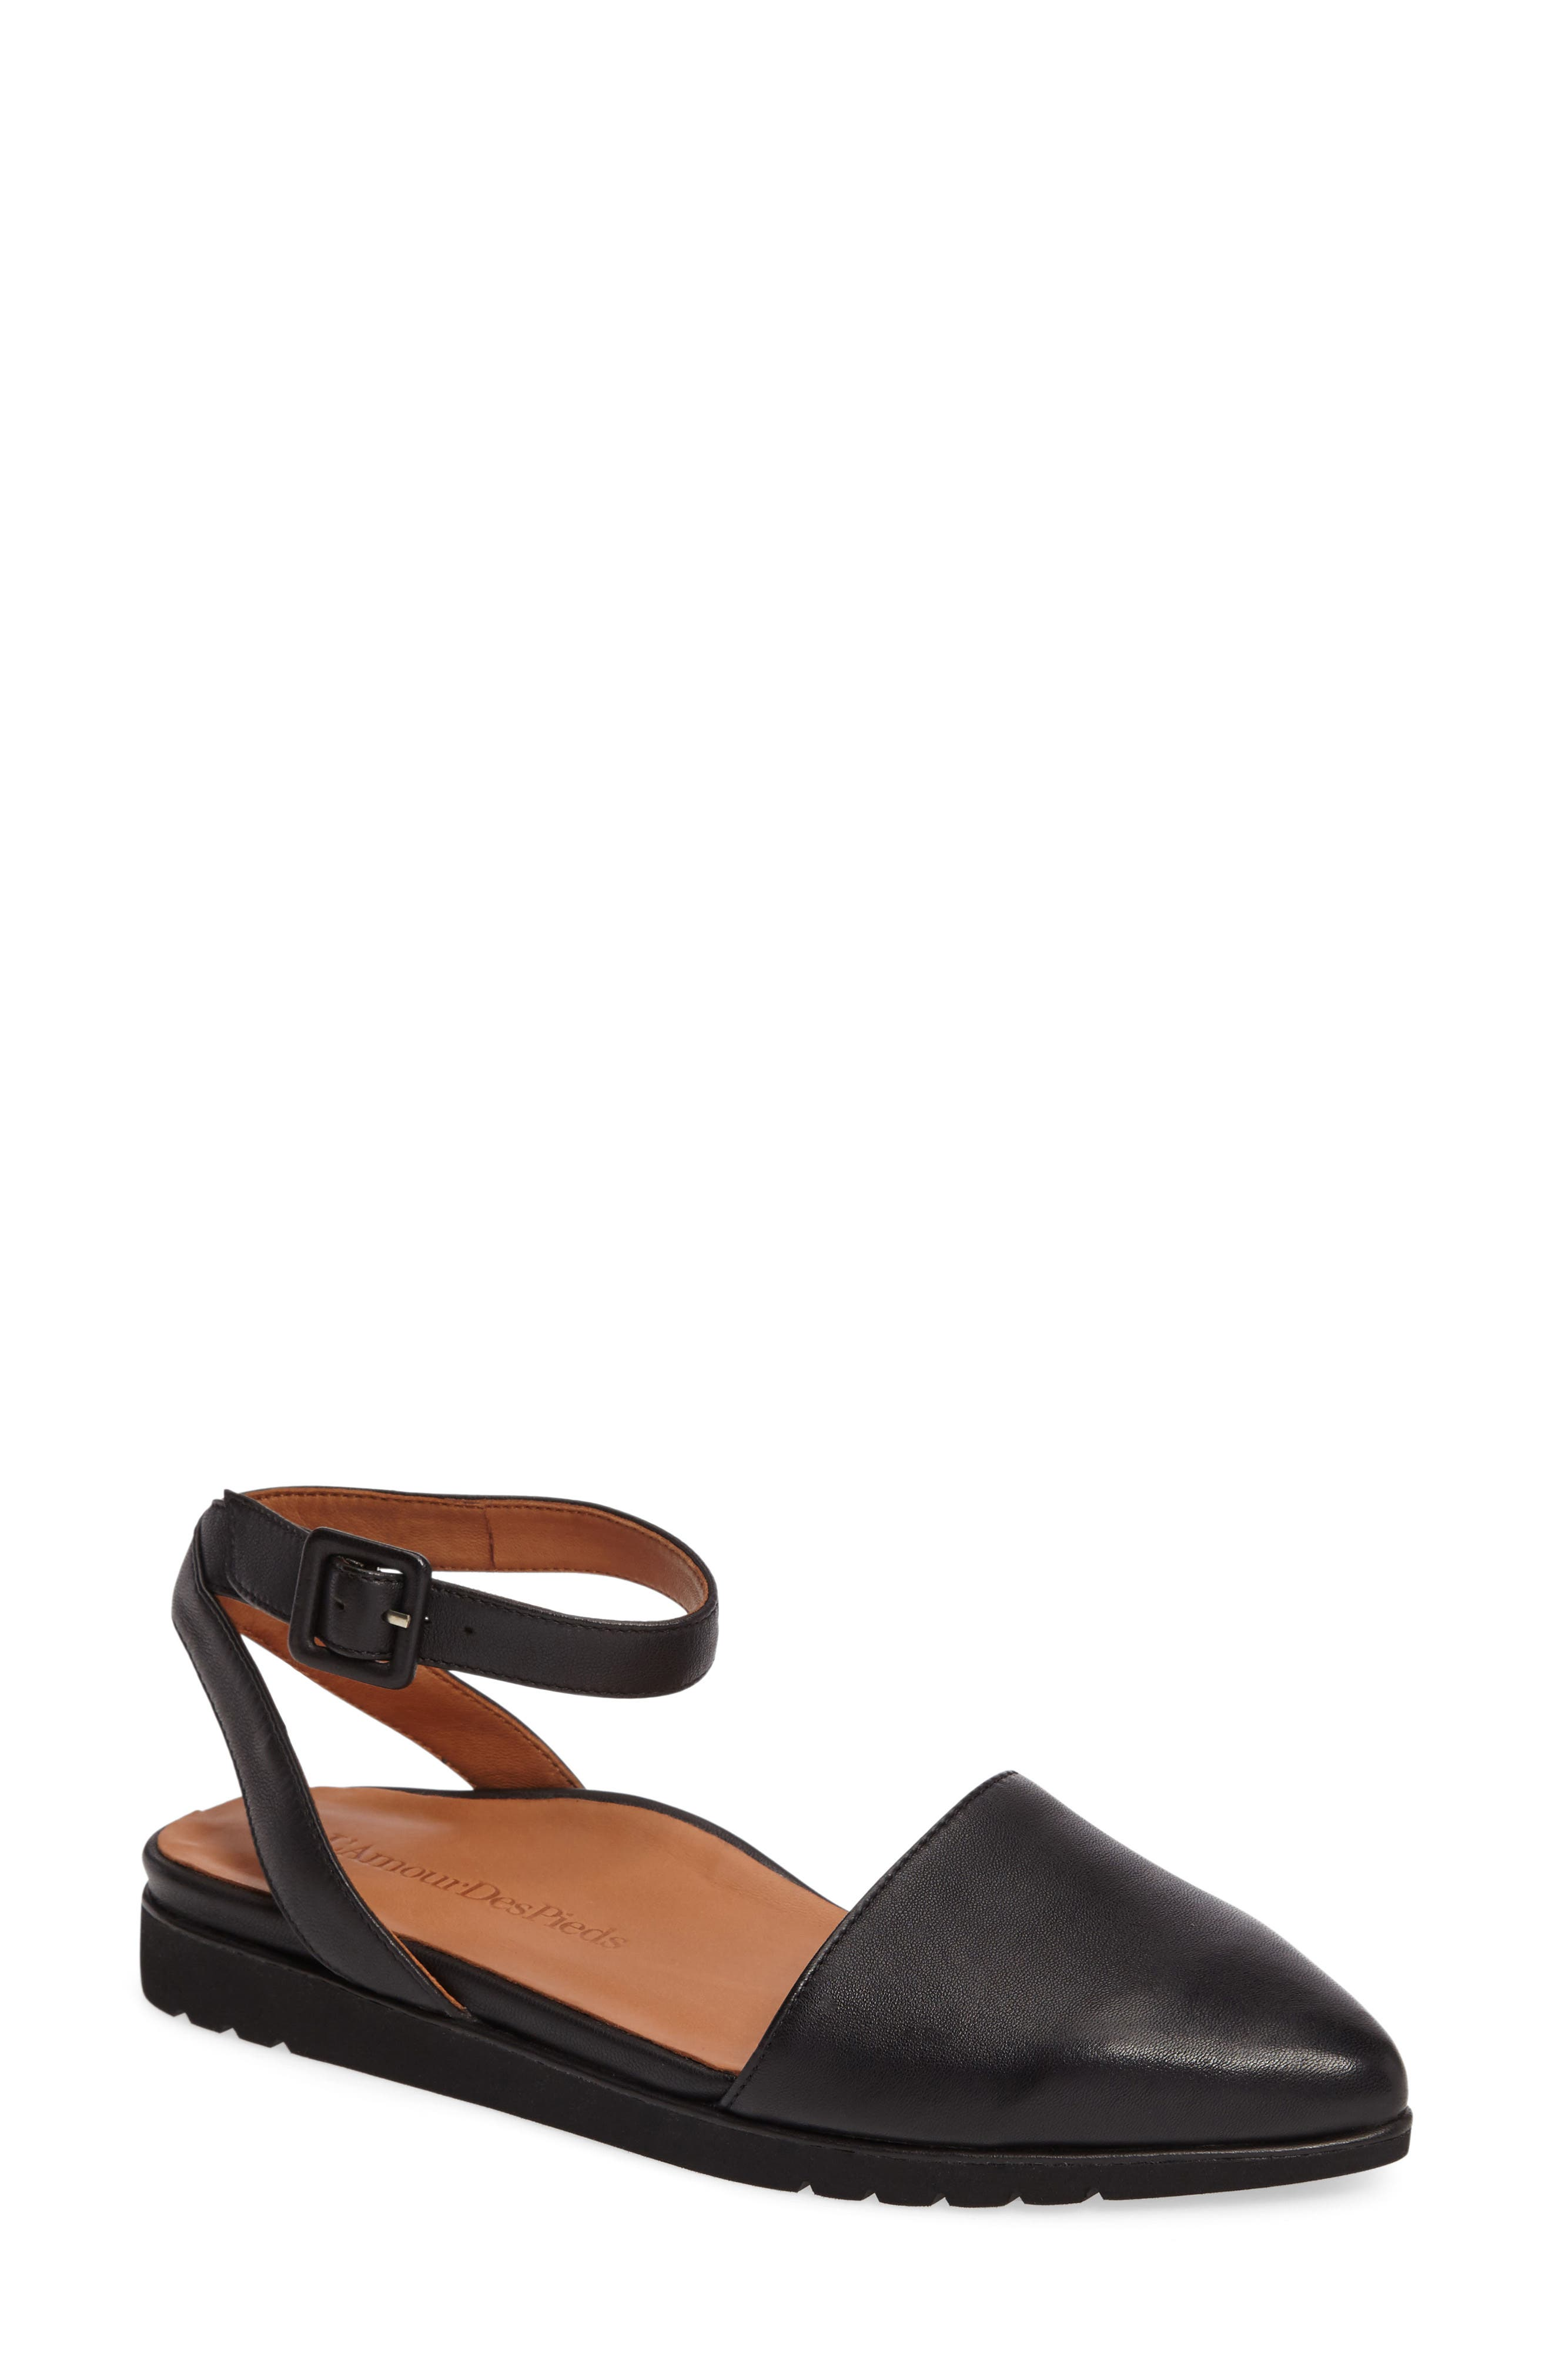 Madolen Strappy Flat,                         Main,                         color, Black Leather